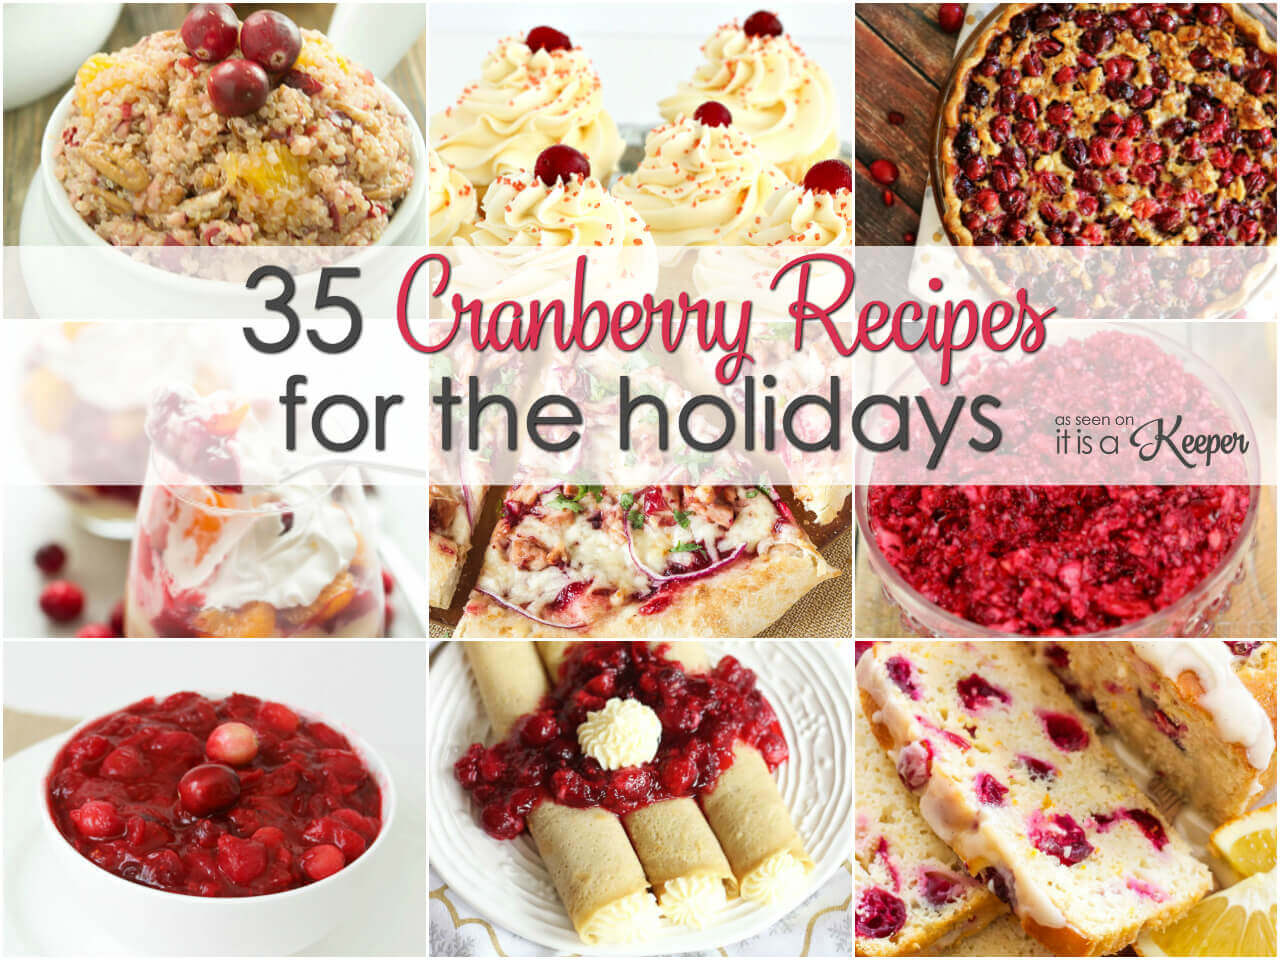 35 Cranberry recipes for the holidays